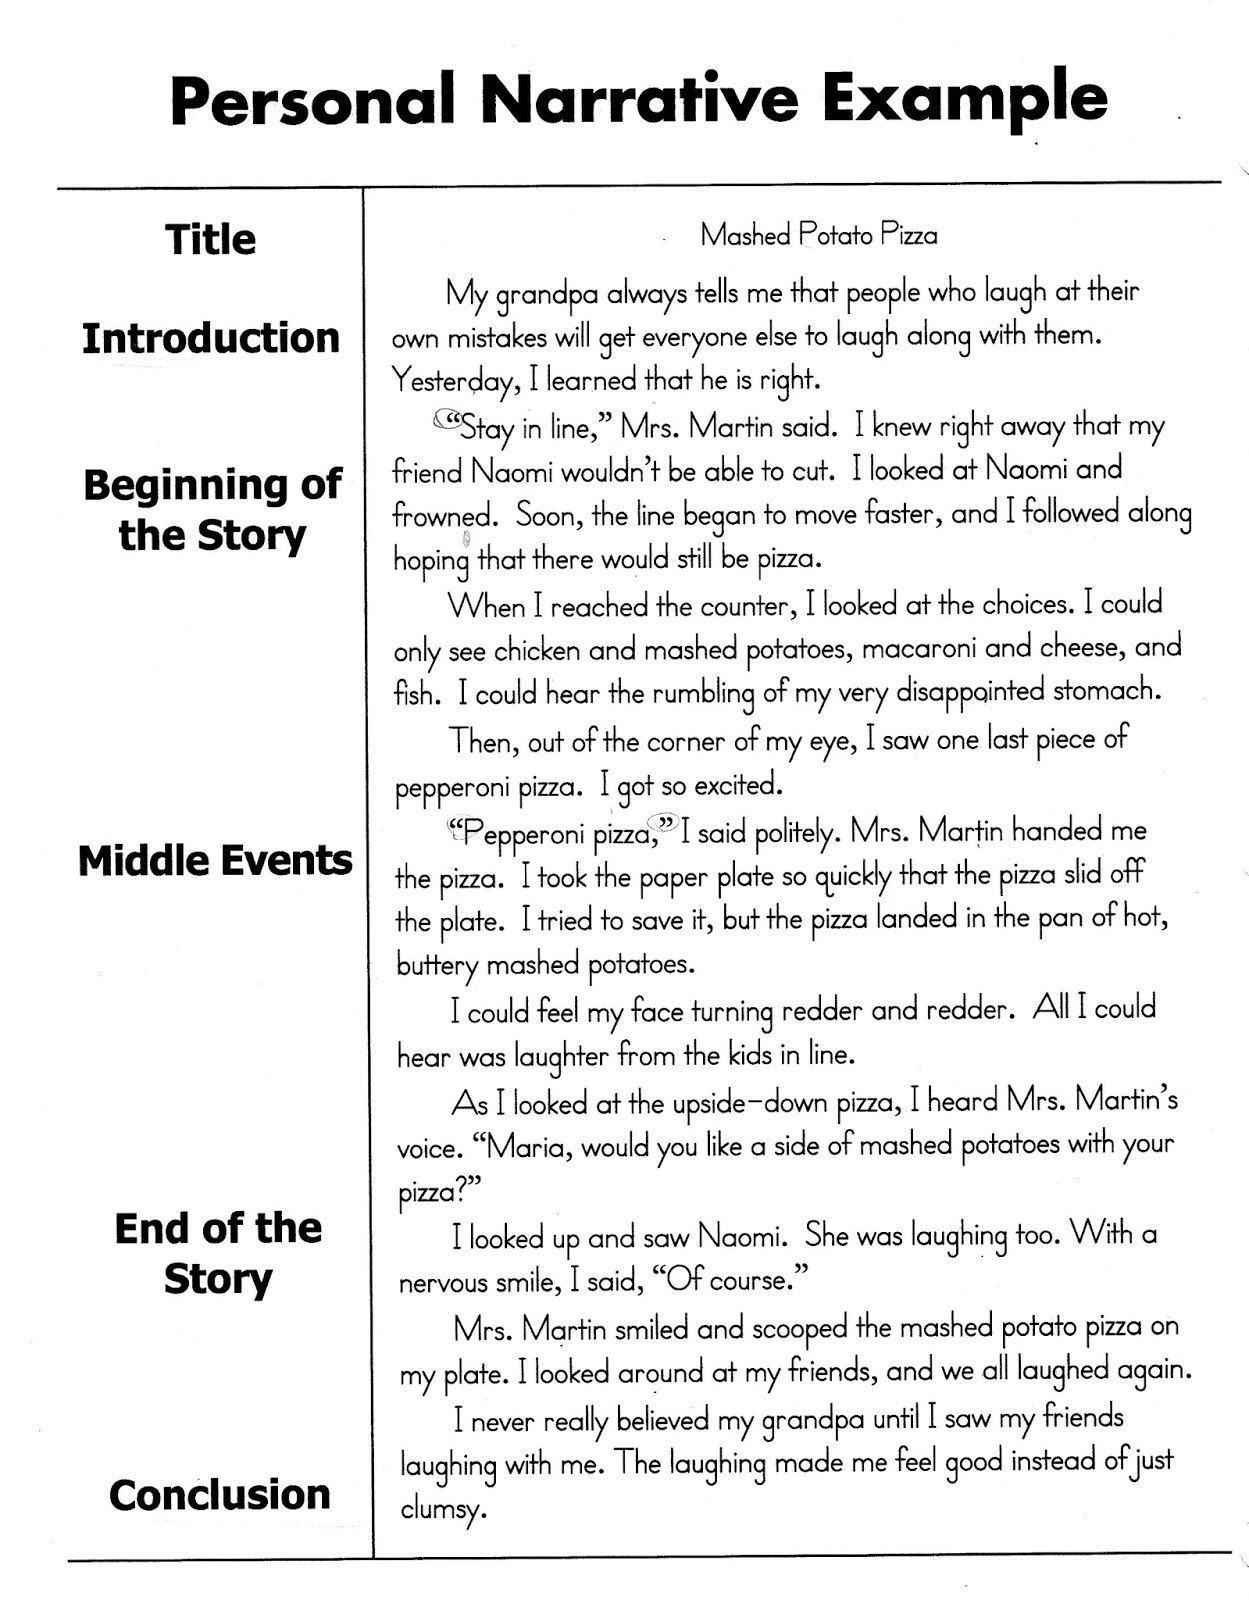 college essay narratives Narrative essay examples for college essay on academic narrative an academic narrative behind every work there is a story.